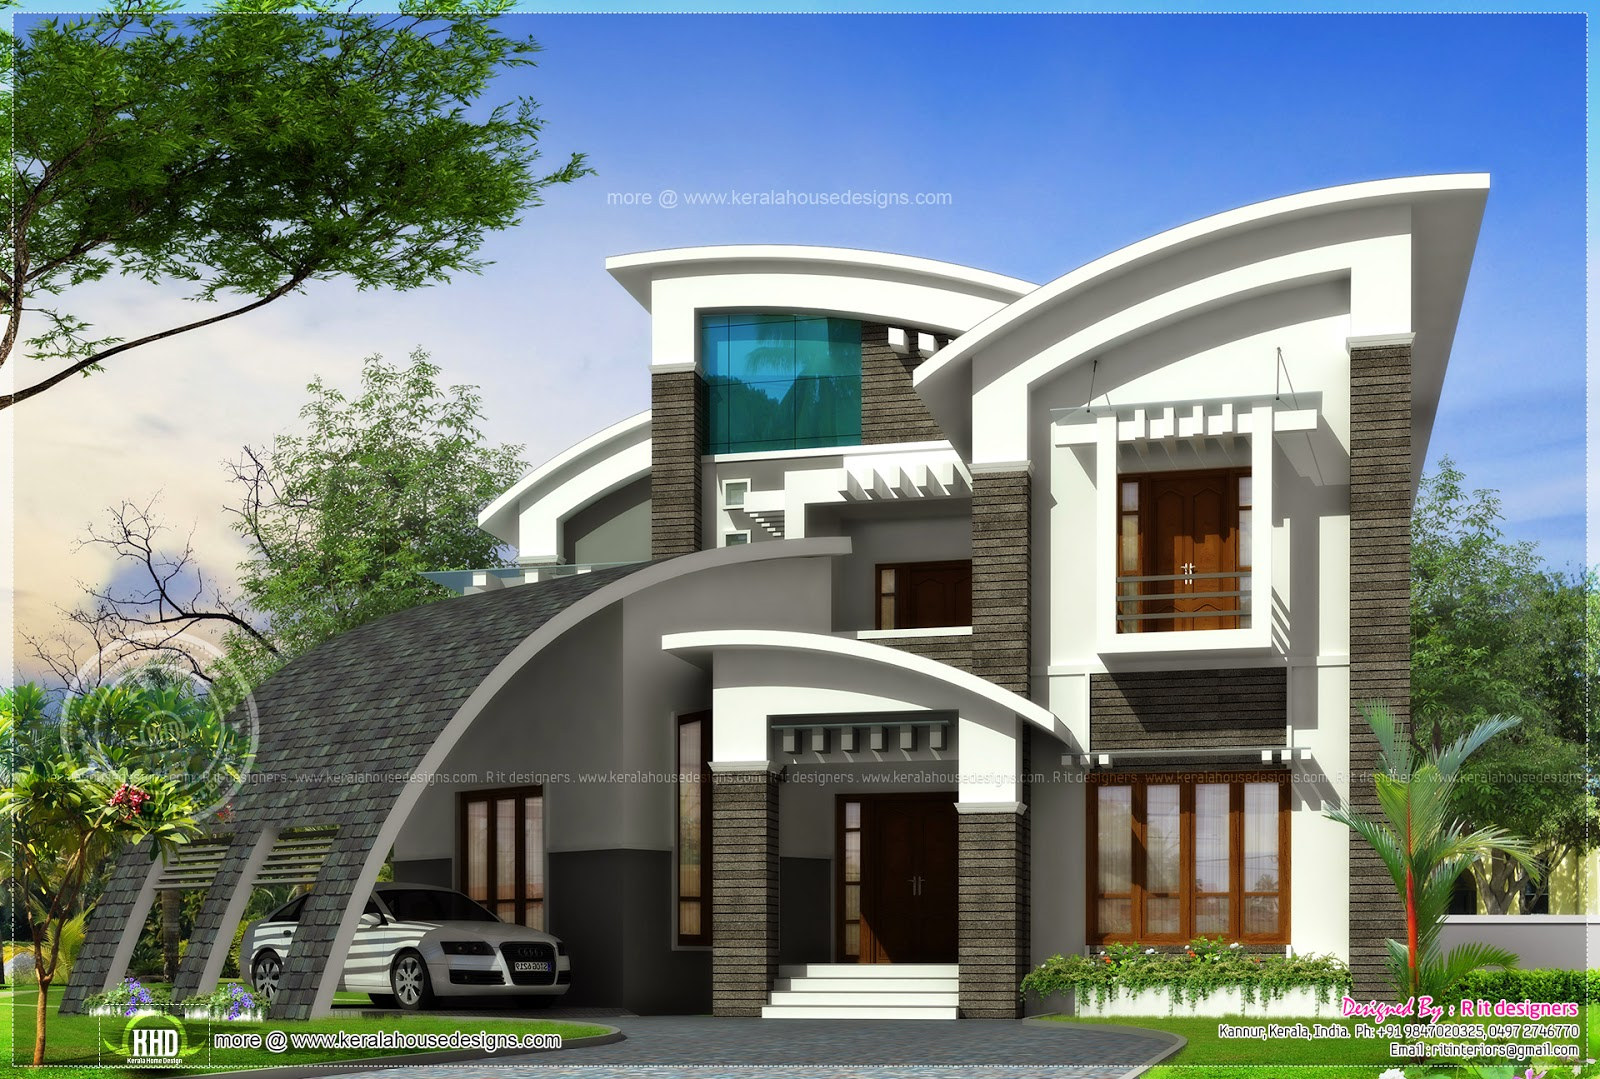 Super luxury ultra modern house design kerala home for Modern house blueprints